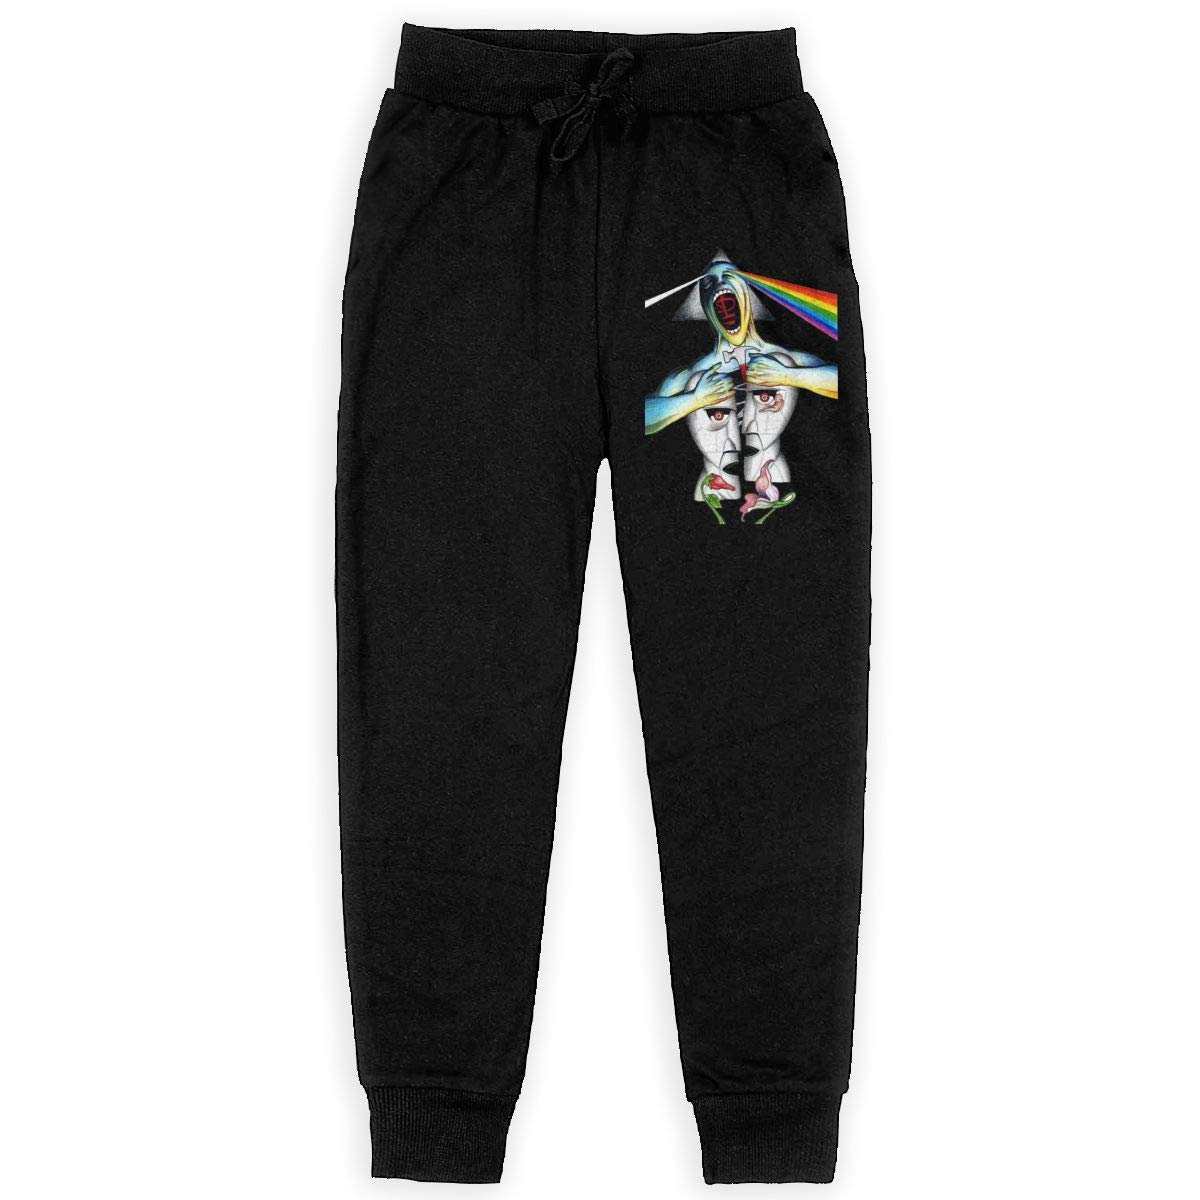 Sunshine Store Pink Floyd Wall The Division Bell3 Boys Girls Teenage Long Sweatpant Jogger Pants